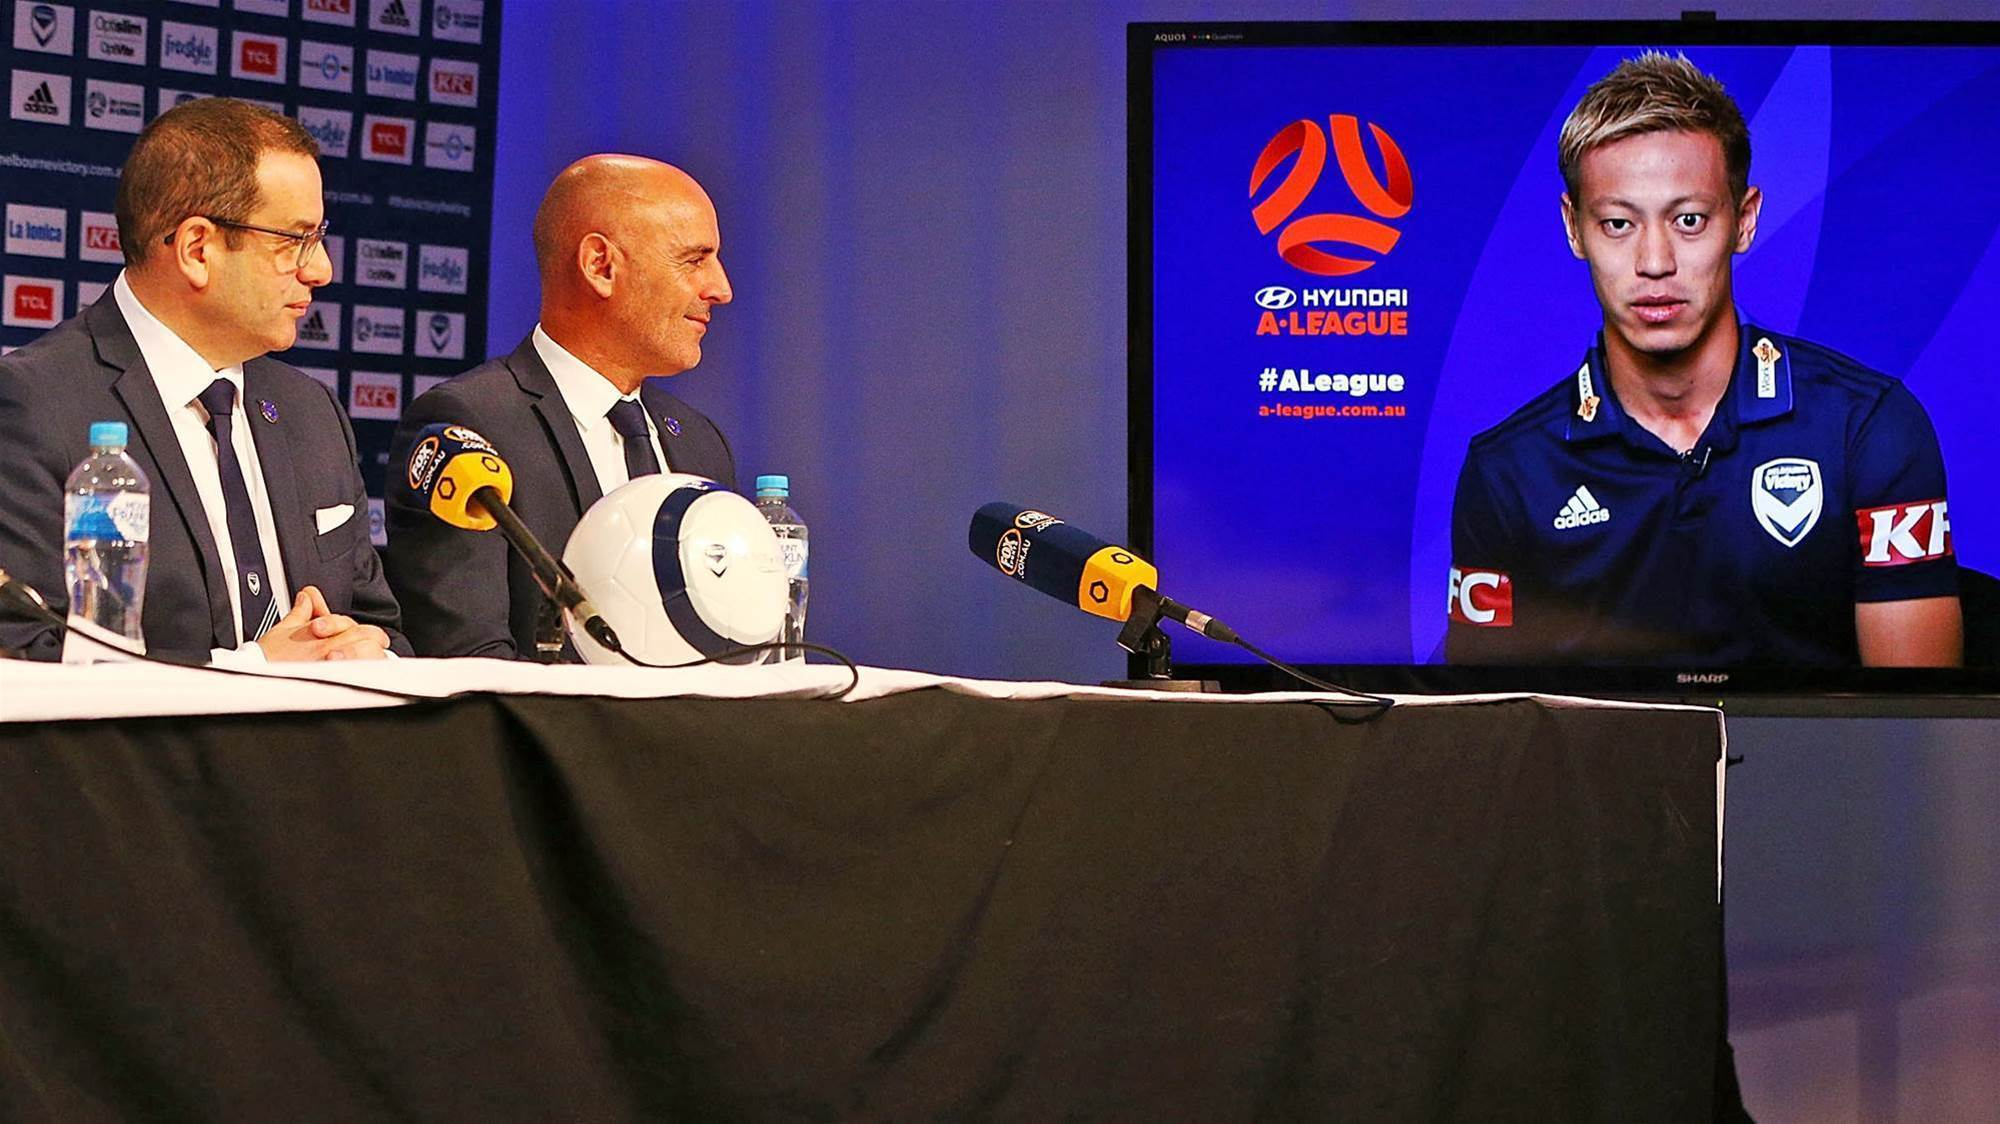 Kevin Muscat: There's more where Keisuke Honda came from...